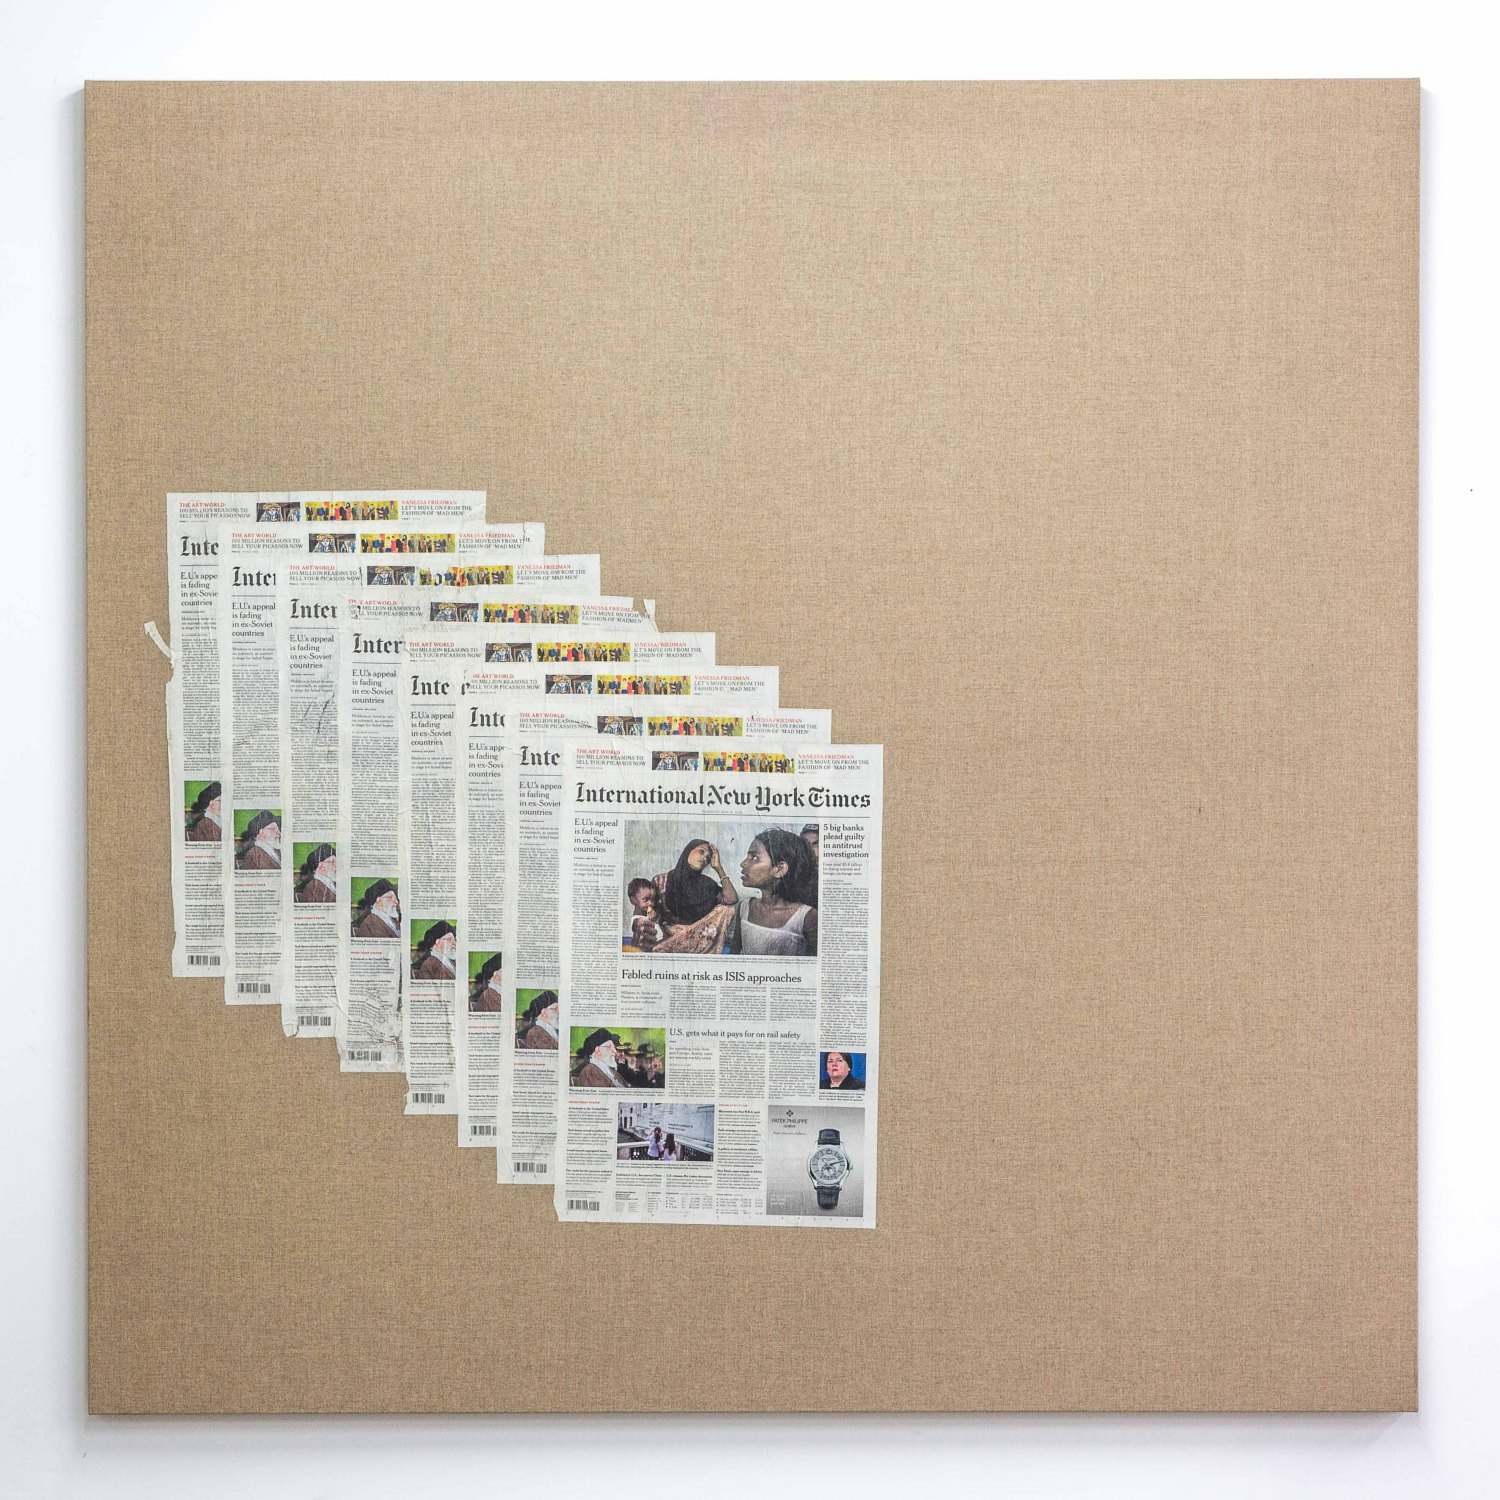 Matias Faldbakken Untitled (Canvas #105), 2015 Newspaper print on Belgian linen, wooden stretcher, 152.5 × 152.5 × 3.2 cm